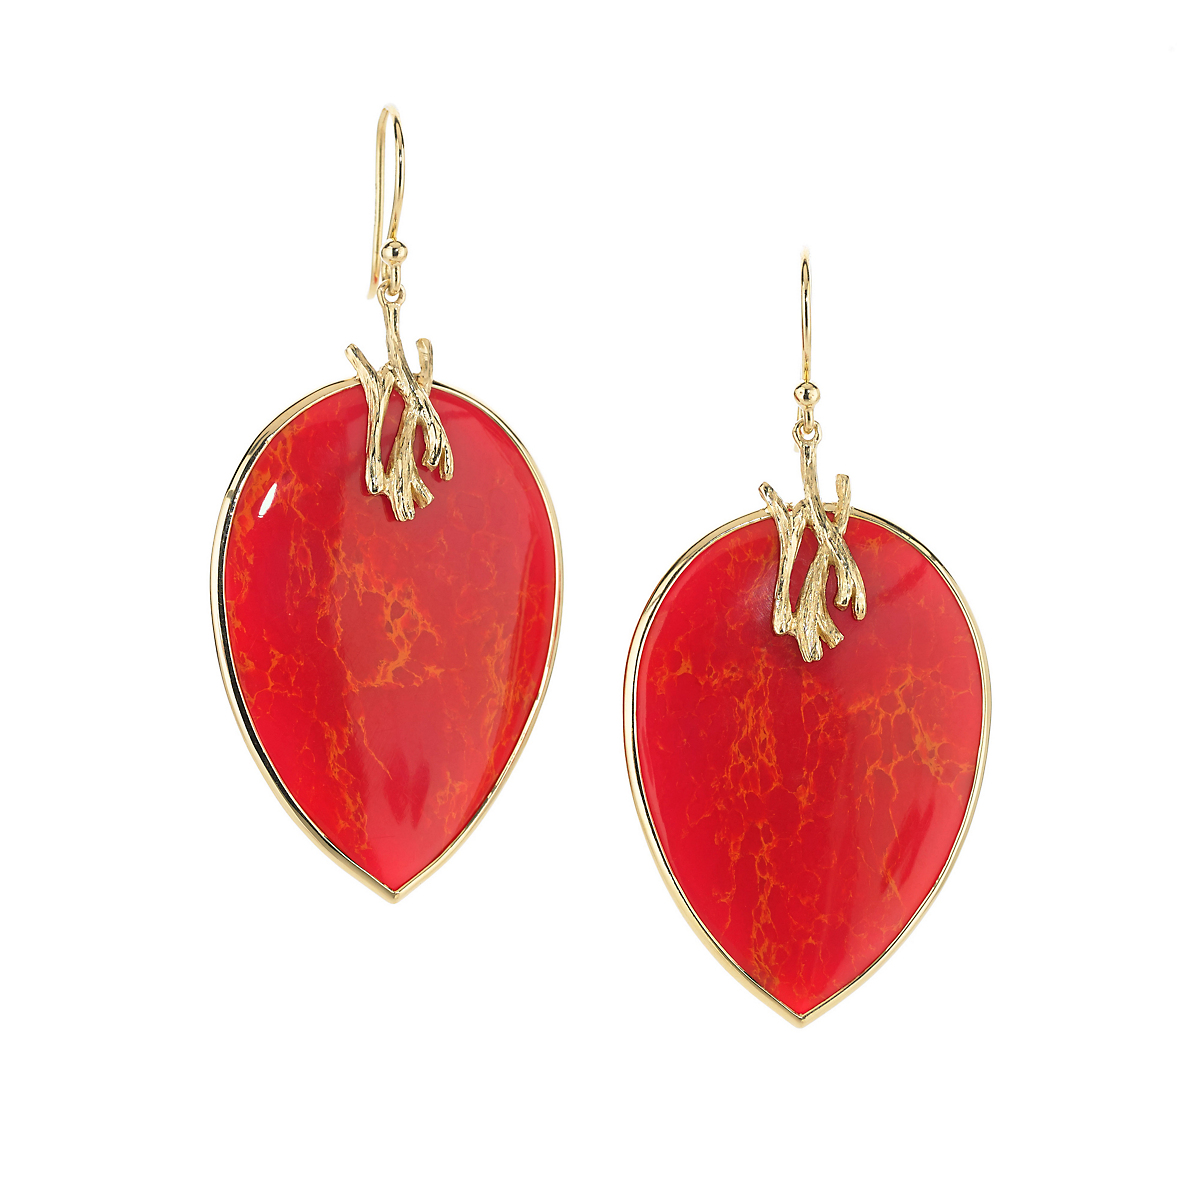 Elizabeth Showers Orange Coral Reverse Teardrop Gold Earrings